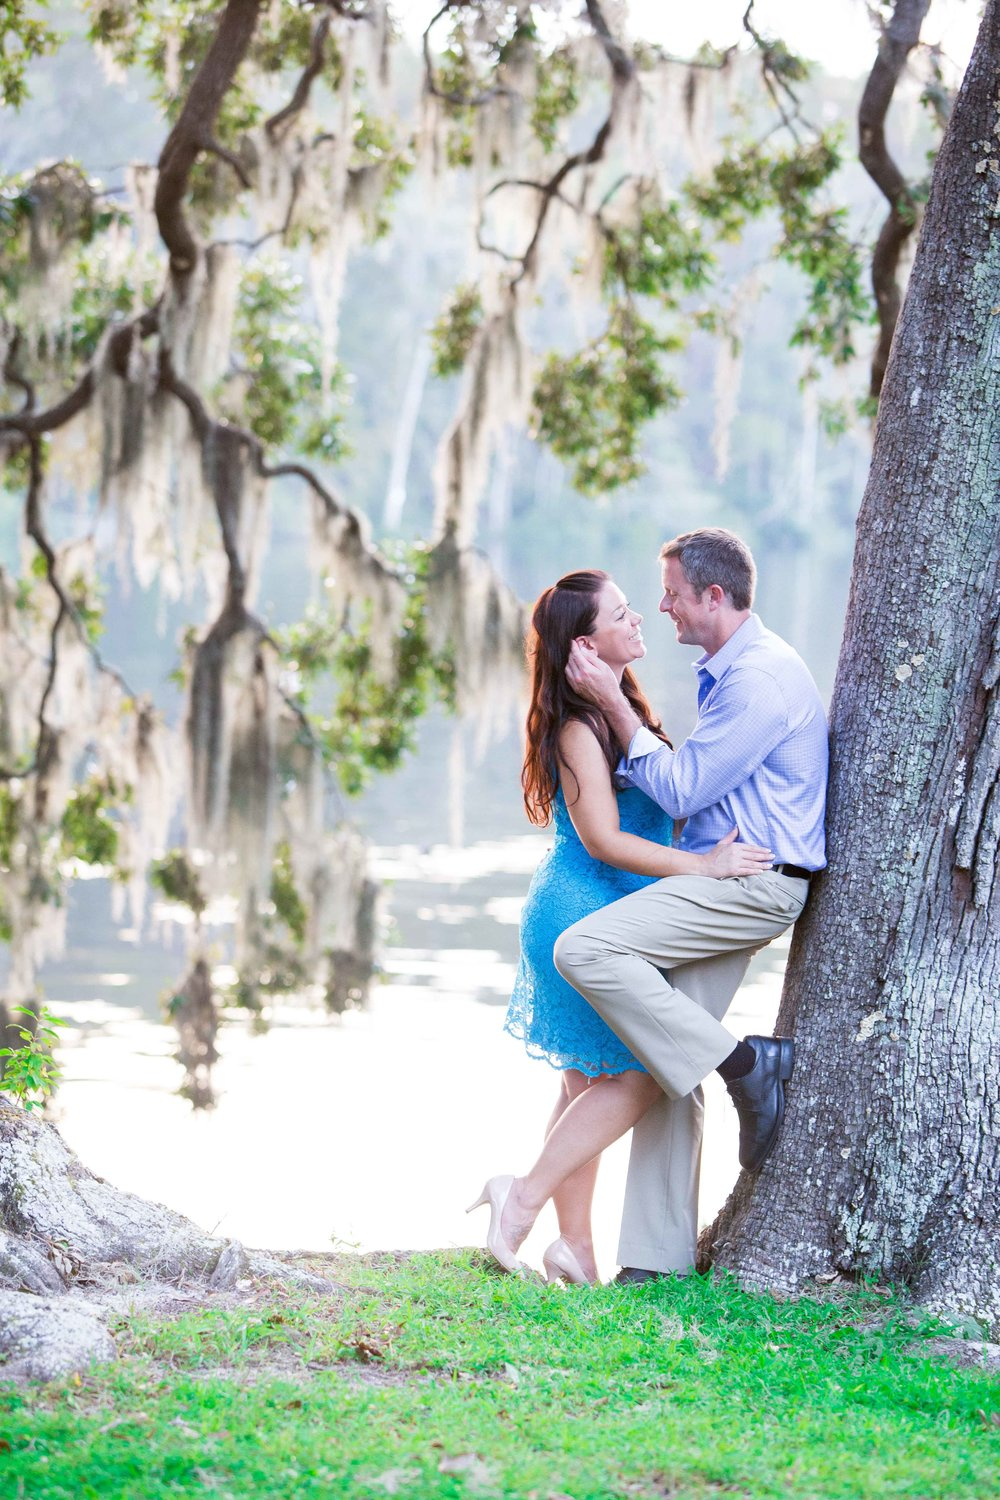 Myrtle beach engagement pictures ramona nicolae photography engagement photos-4.jpg